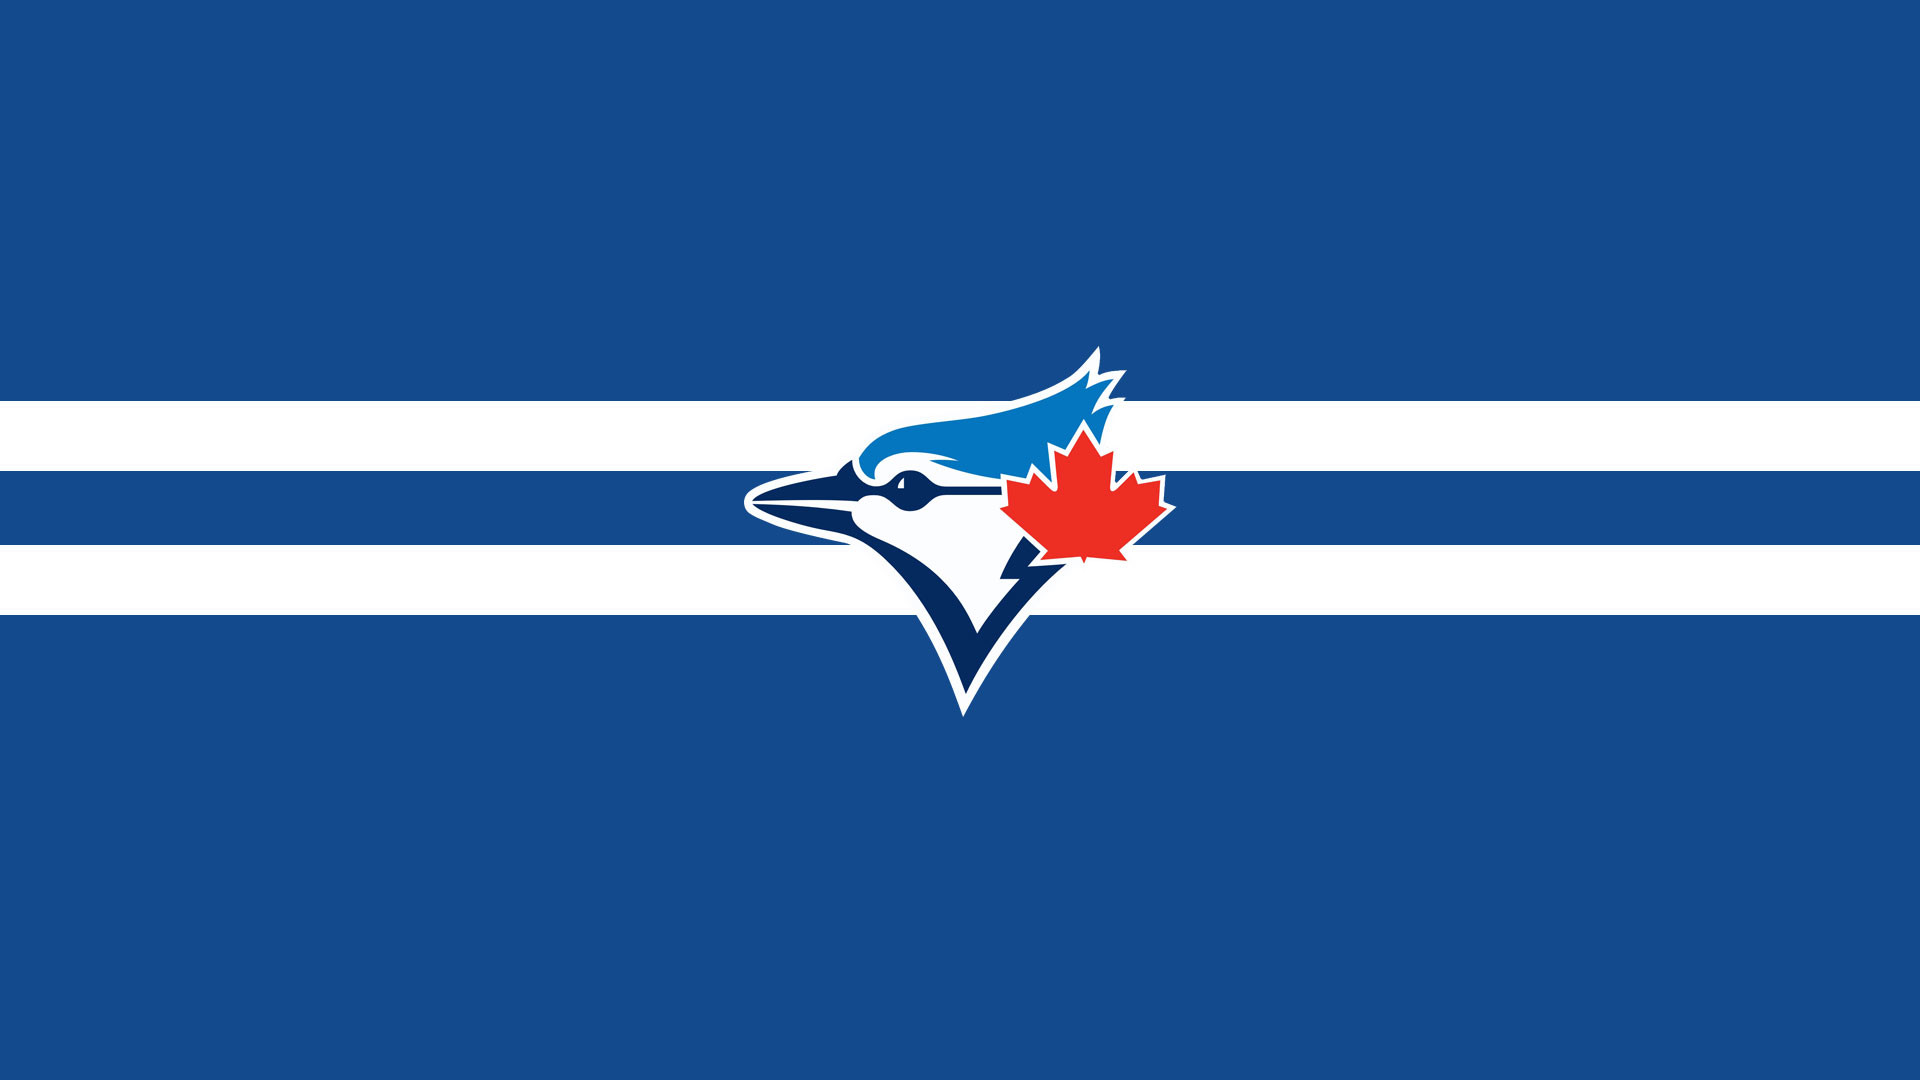 1920x1080 HD Toronto Blue Jays Wallpapers - HDWallSource.com